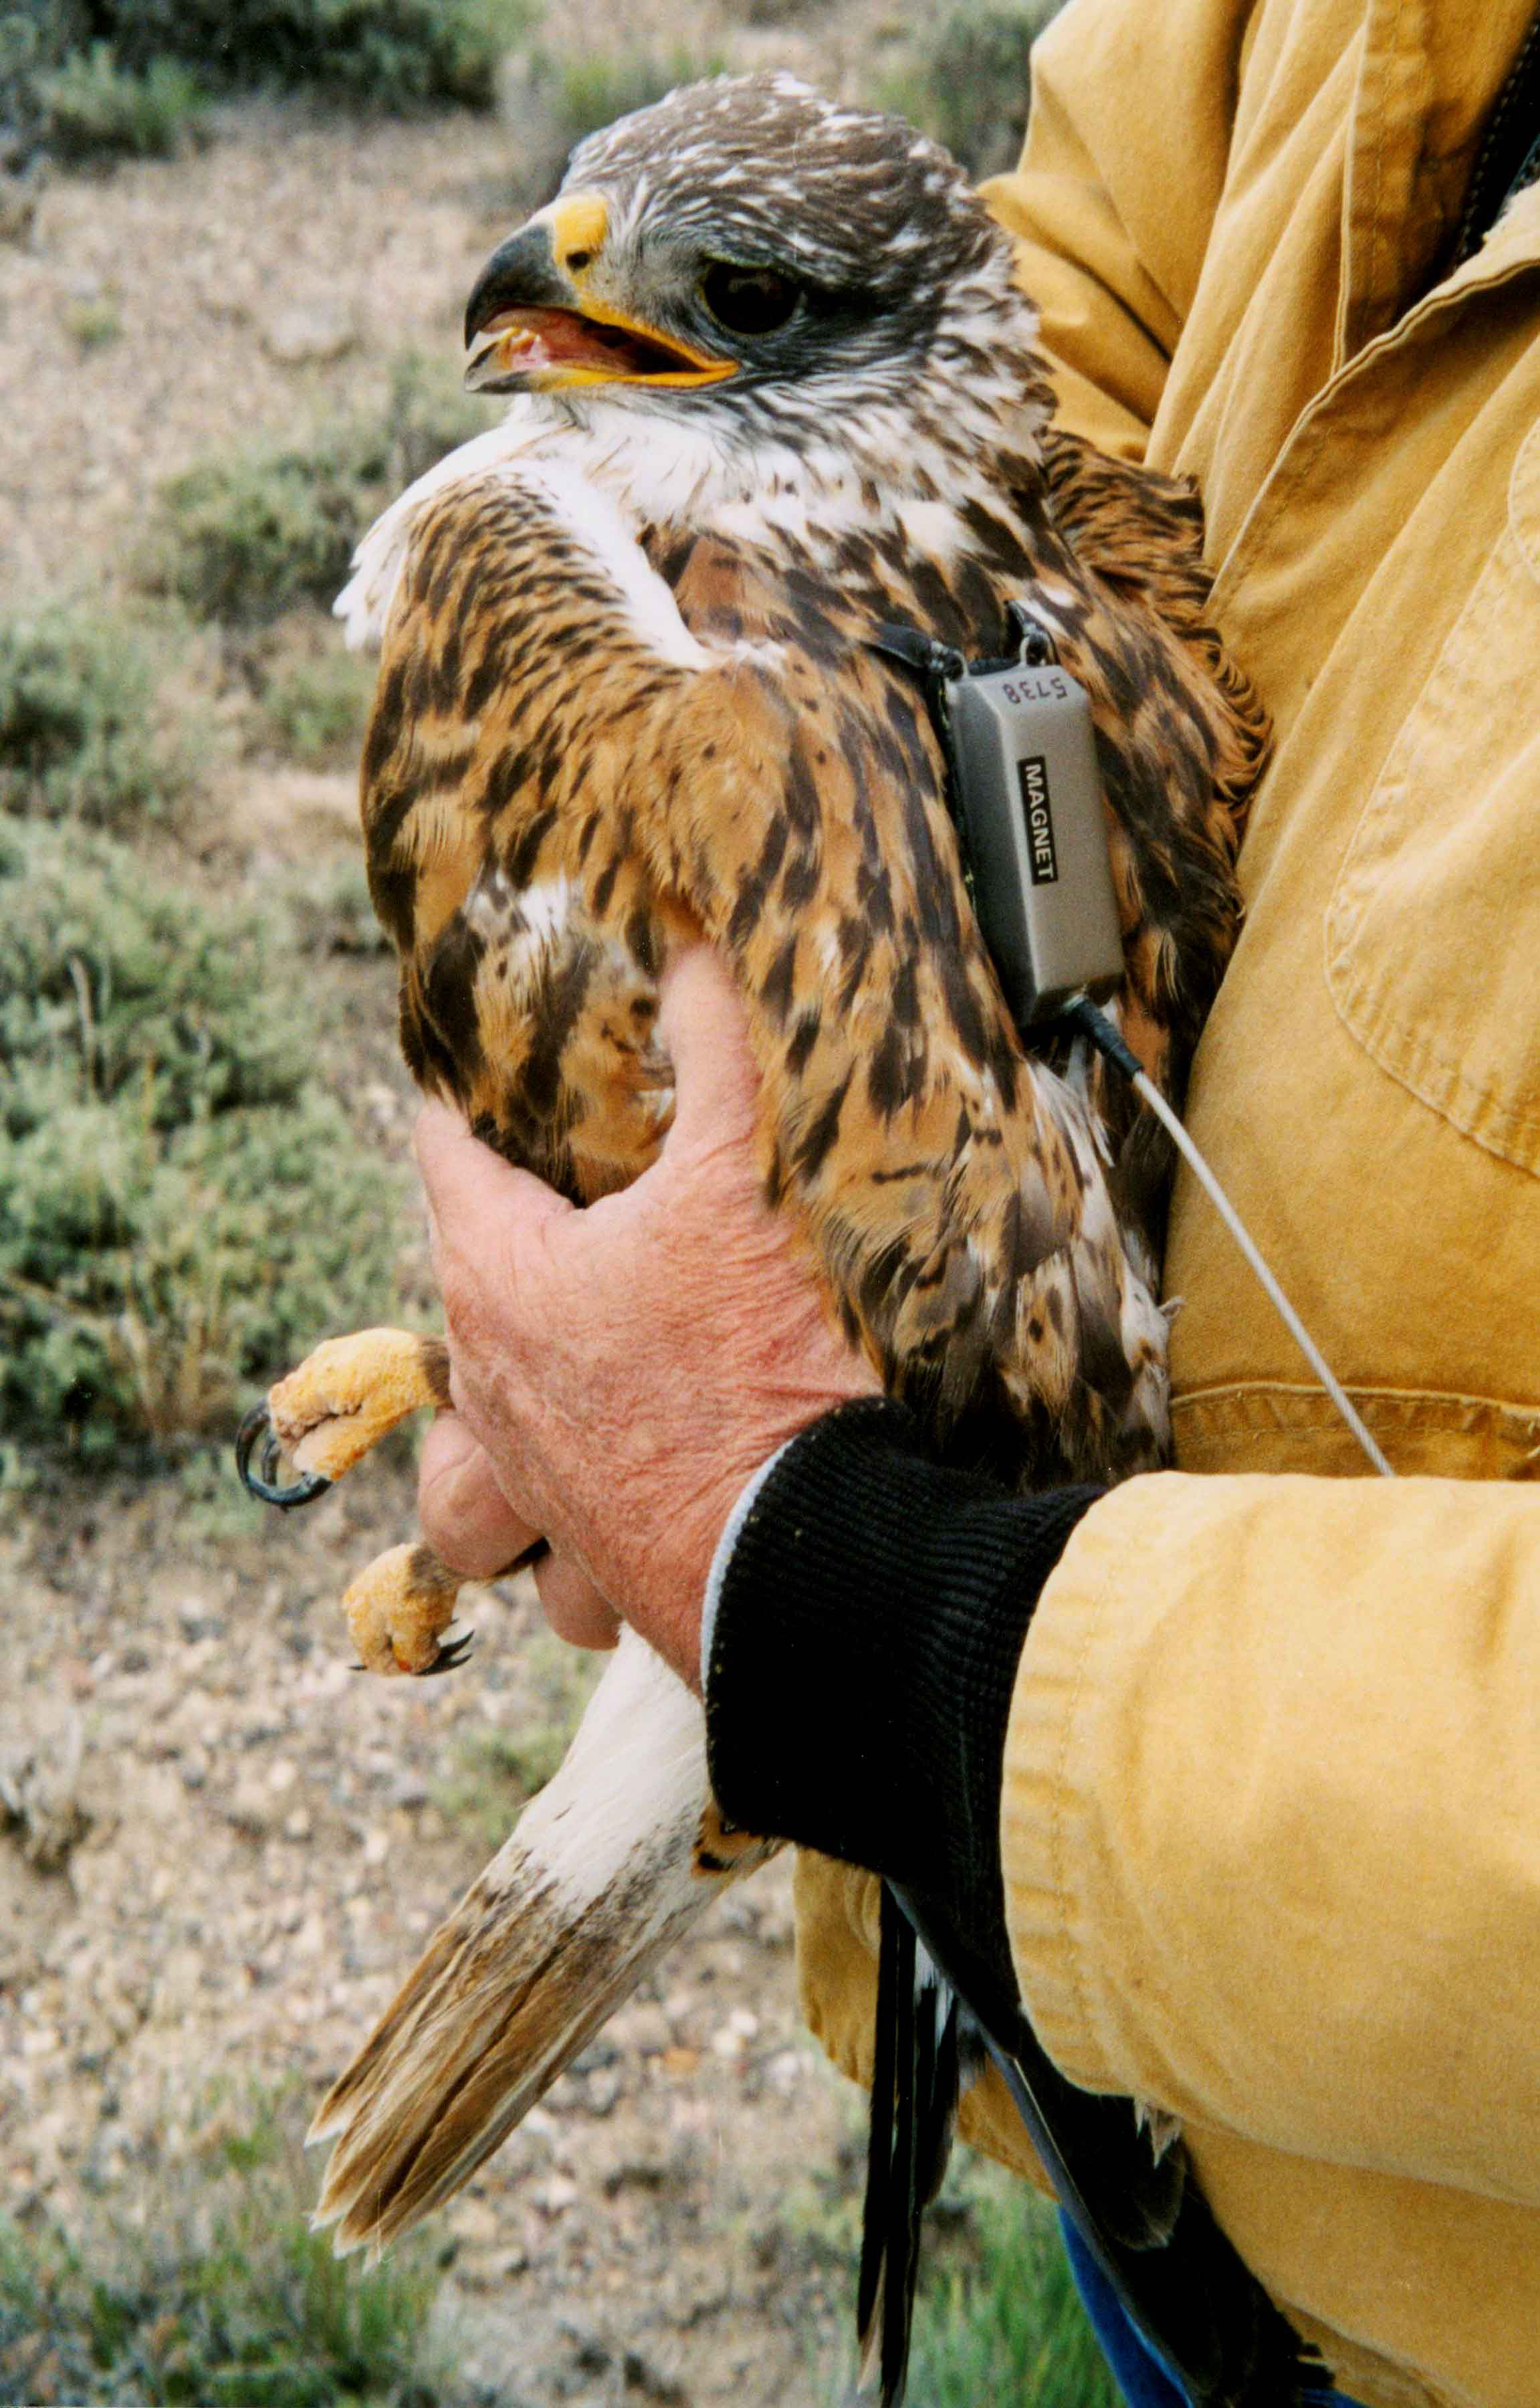 Ferruginous hawk with a transmitter being held